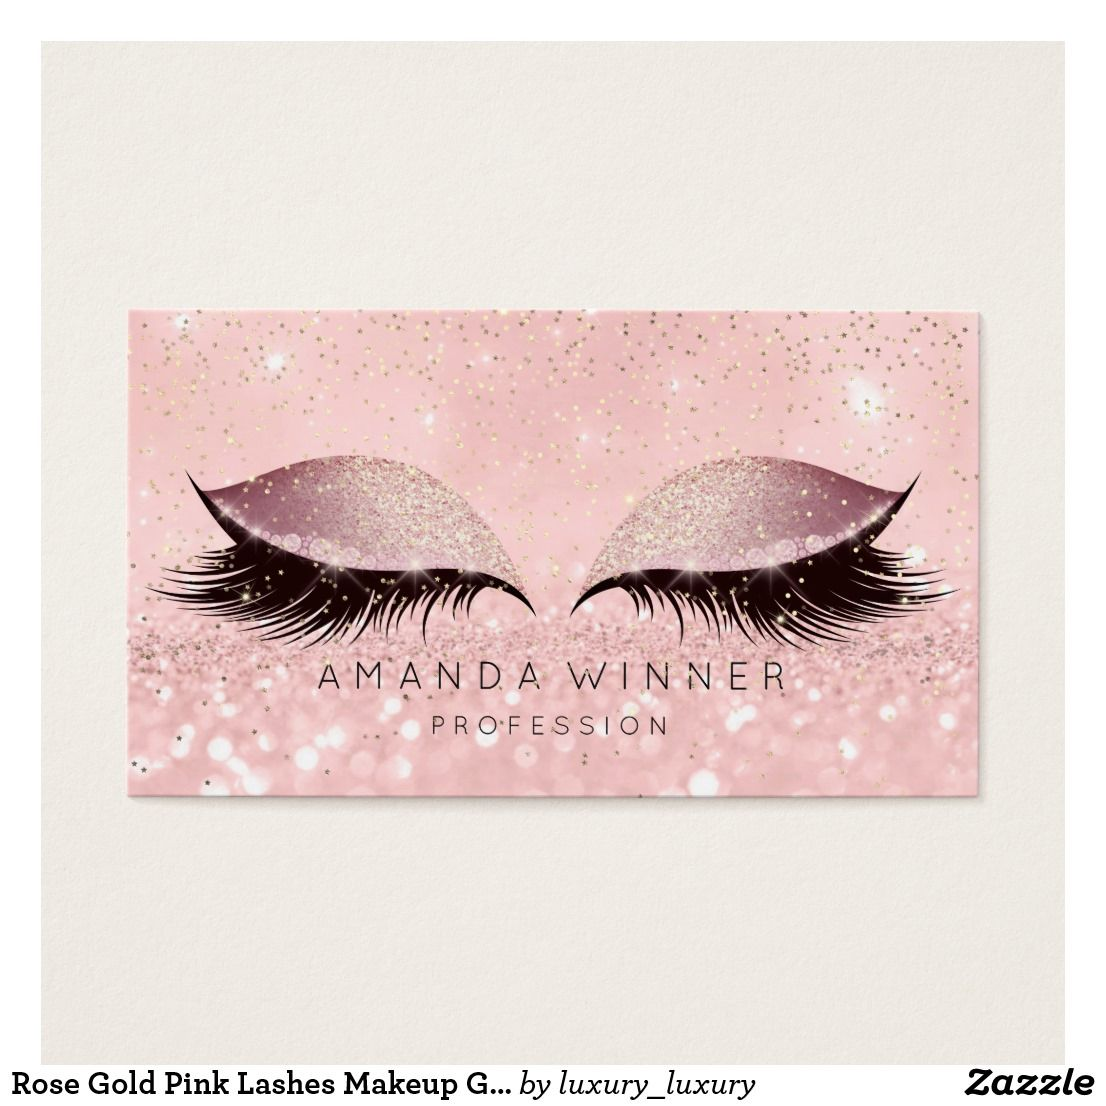 Rose gold pink lashes makeup glitter makeup business card makeup rose gold pink lashes makeup glitter makeup business card magicingreecefo Image collections